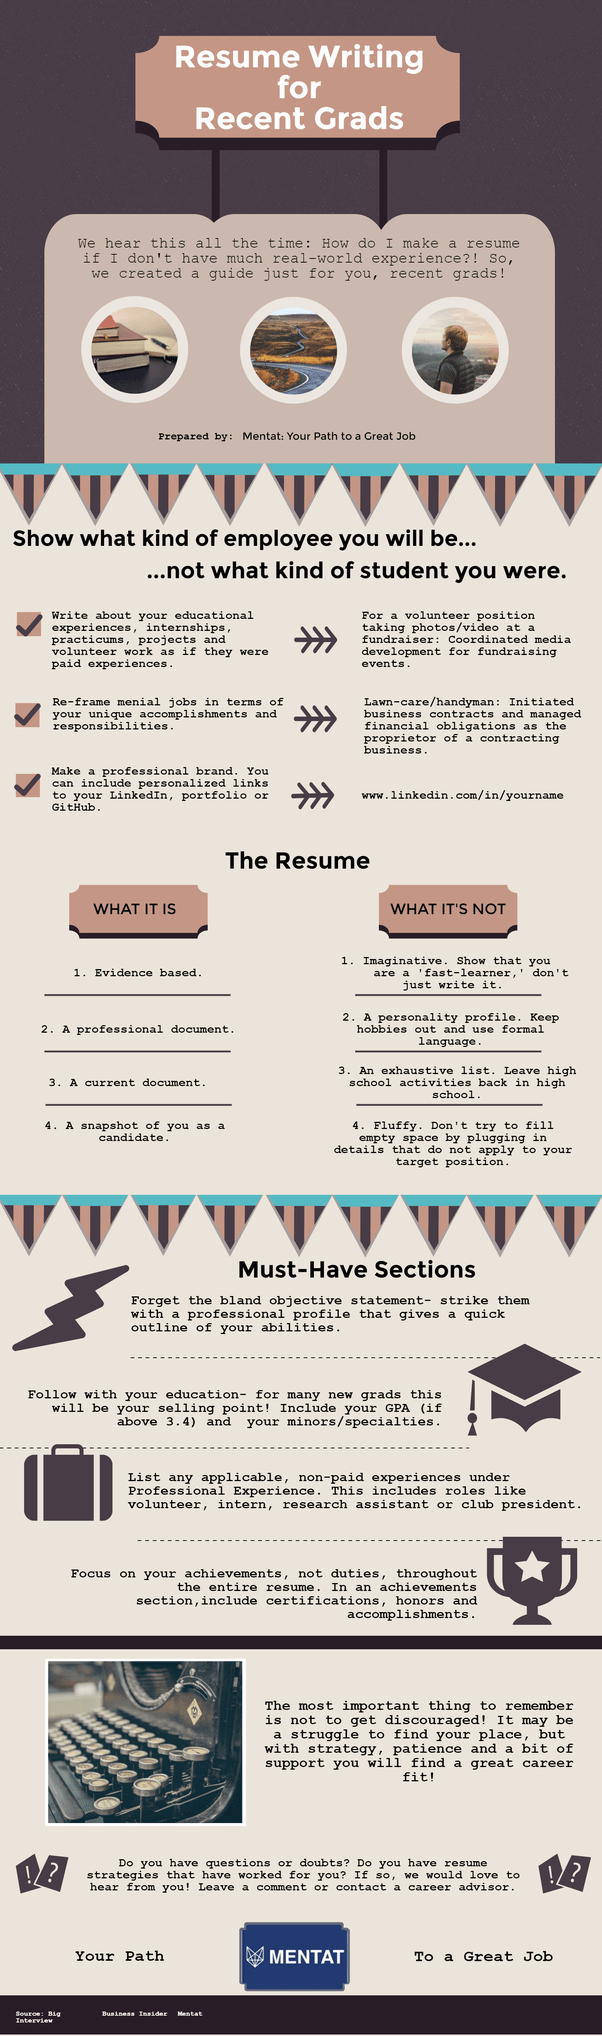 I am a last year post graduate student and want to make a resume to     Here are some more resume writing resources as well  I wish you all the  best in you application process  We need inspired teachers in the school  system